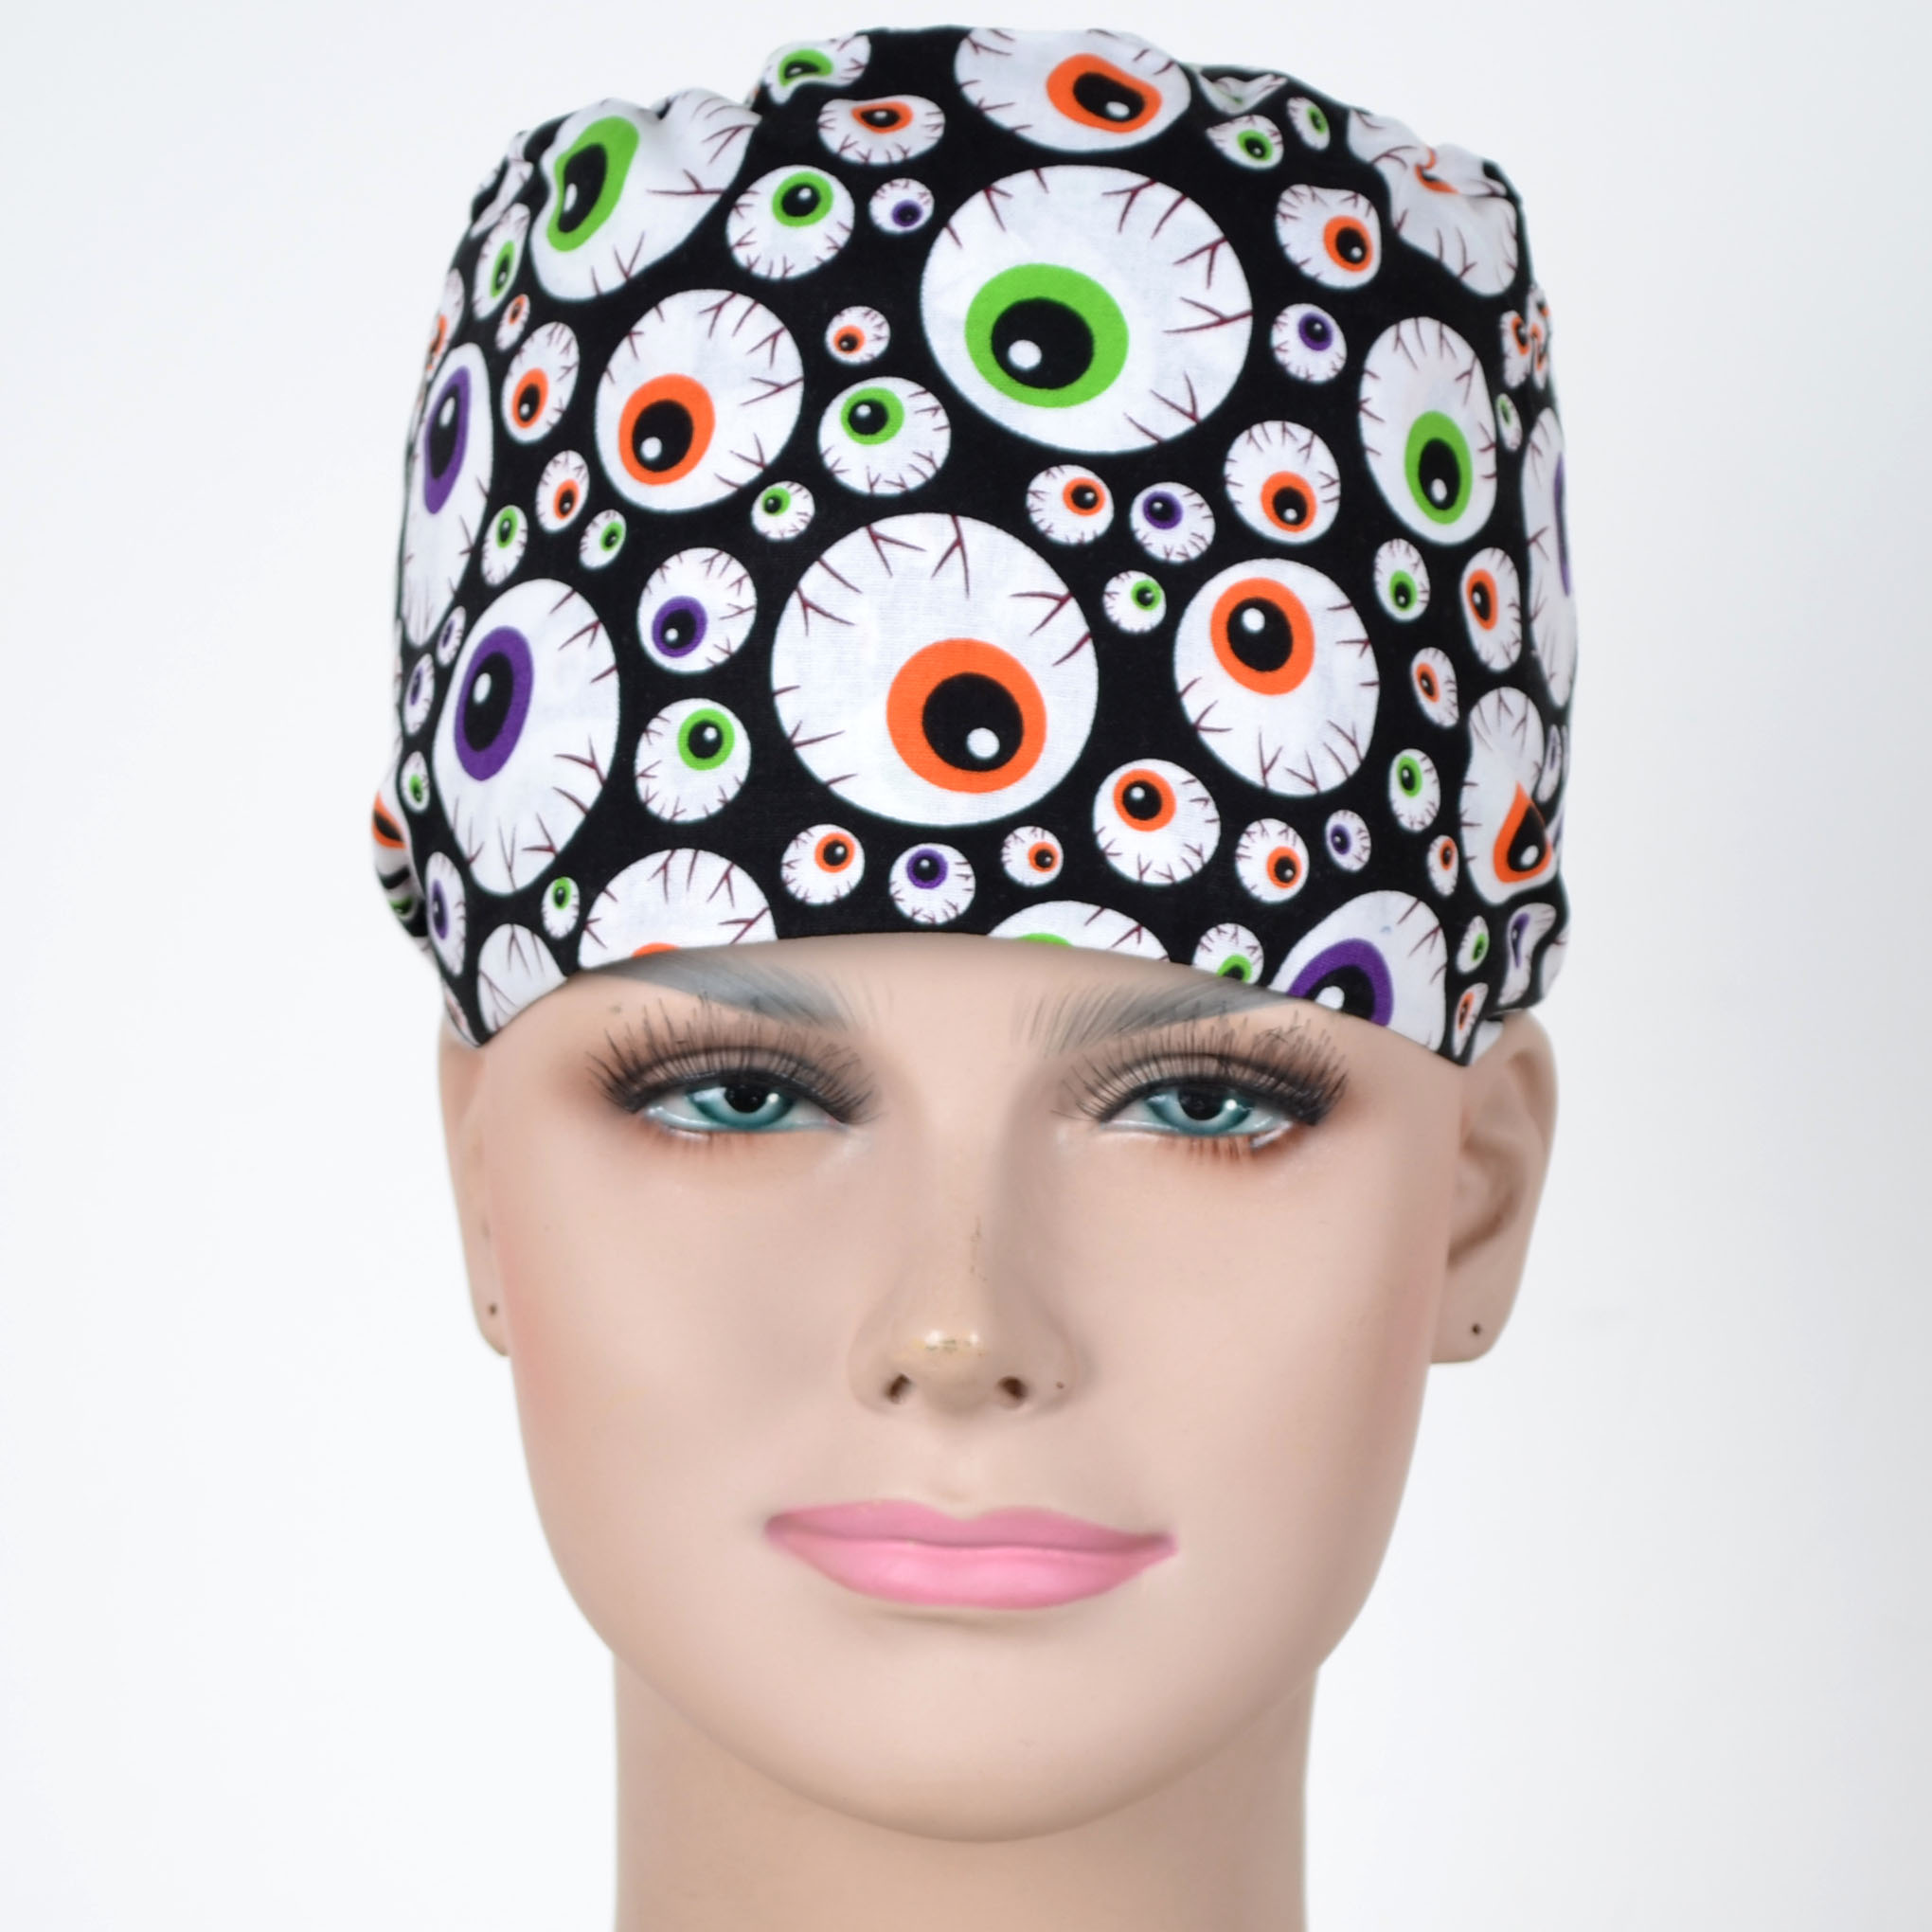 Hennar Unisex Scrub Caps For Men And Women,medical Caps In Black With Eyes Prints,3 Sizes For Choice